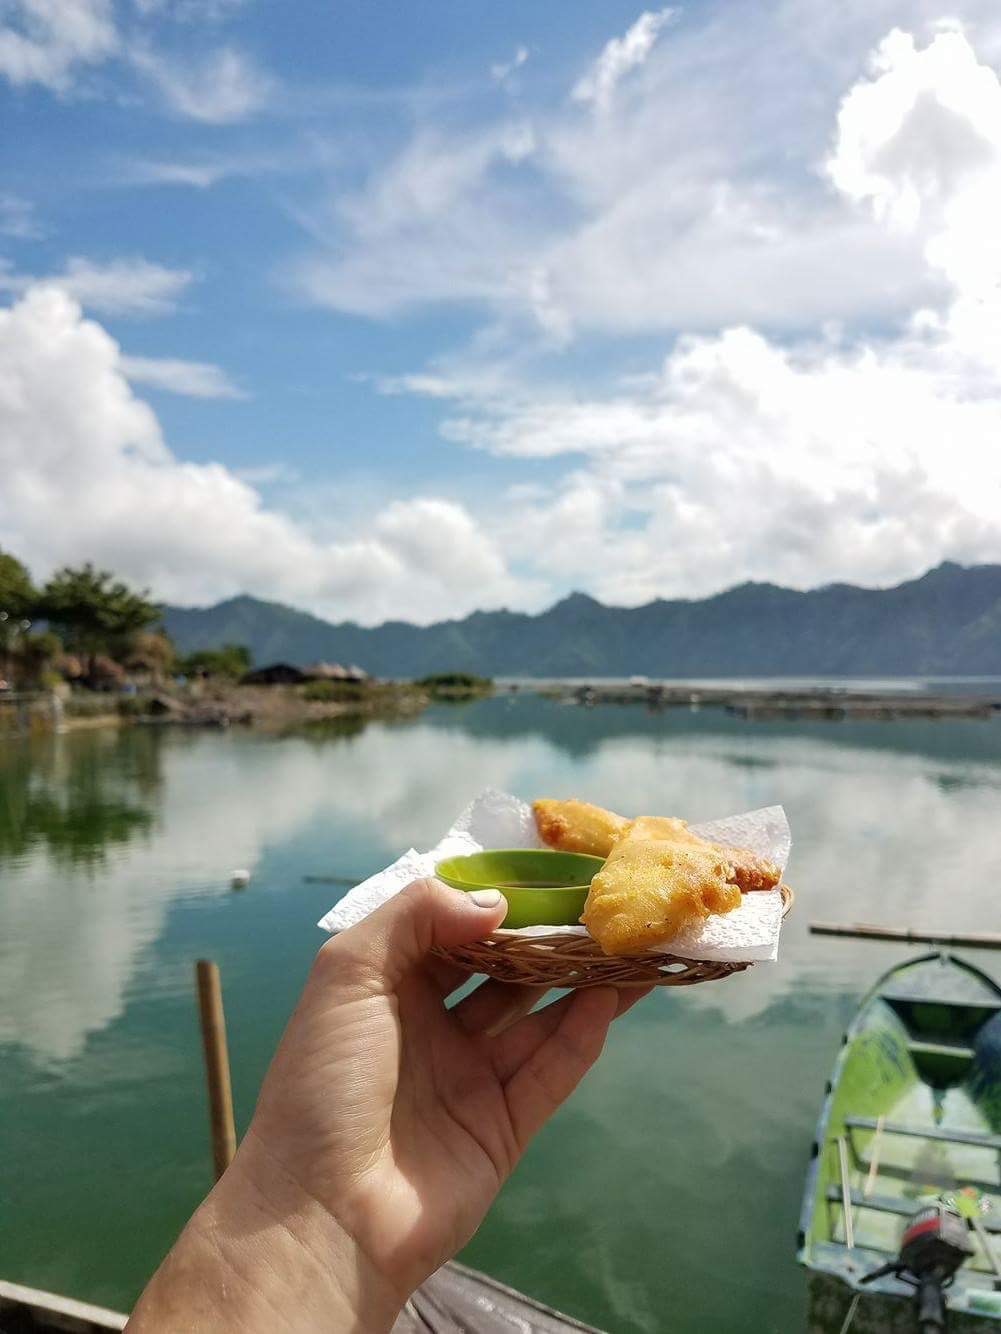 Welcome drink and snack included in our private tour and served at the natural hot springs.